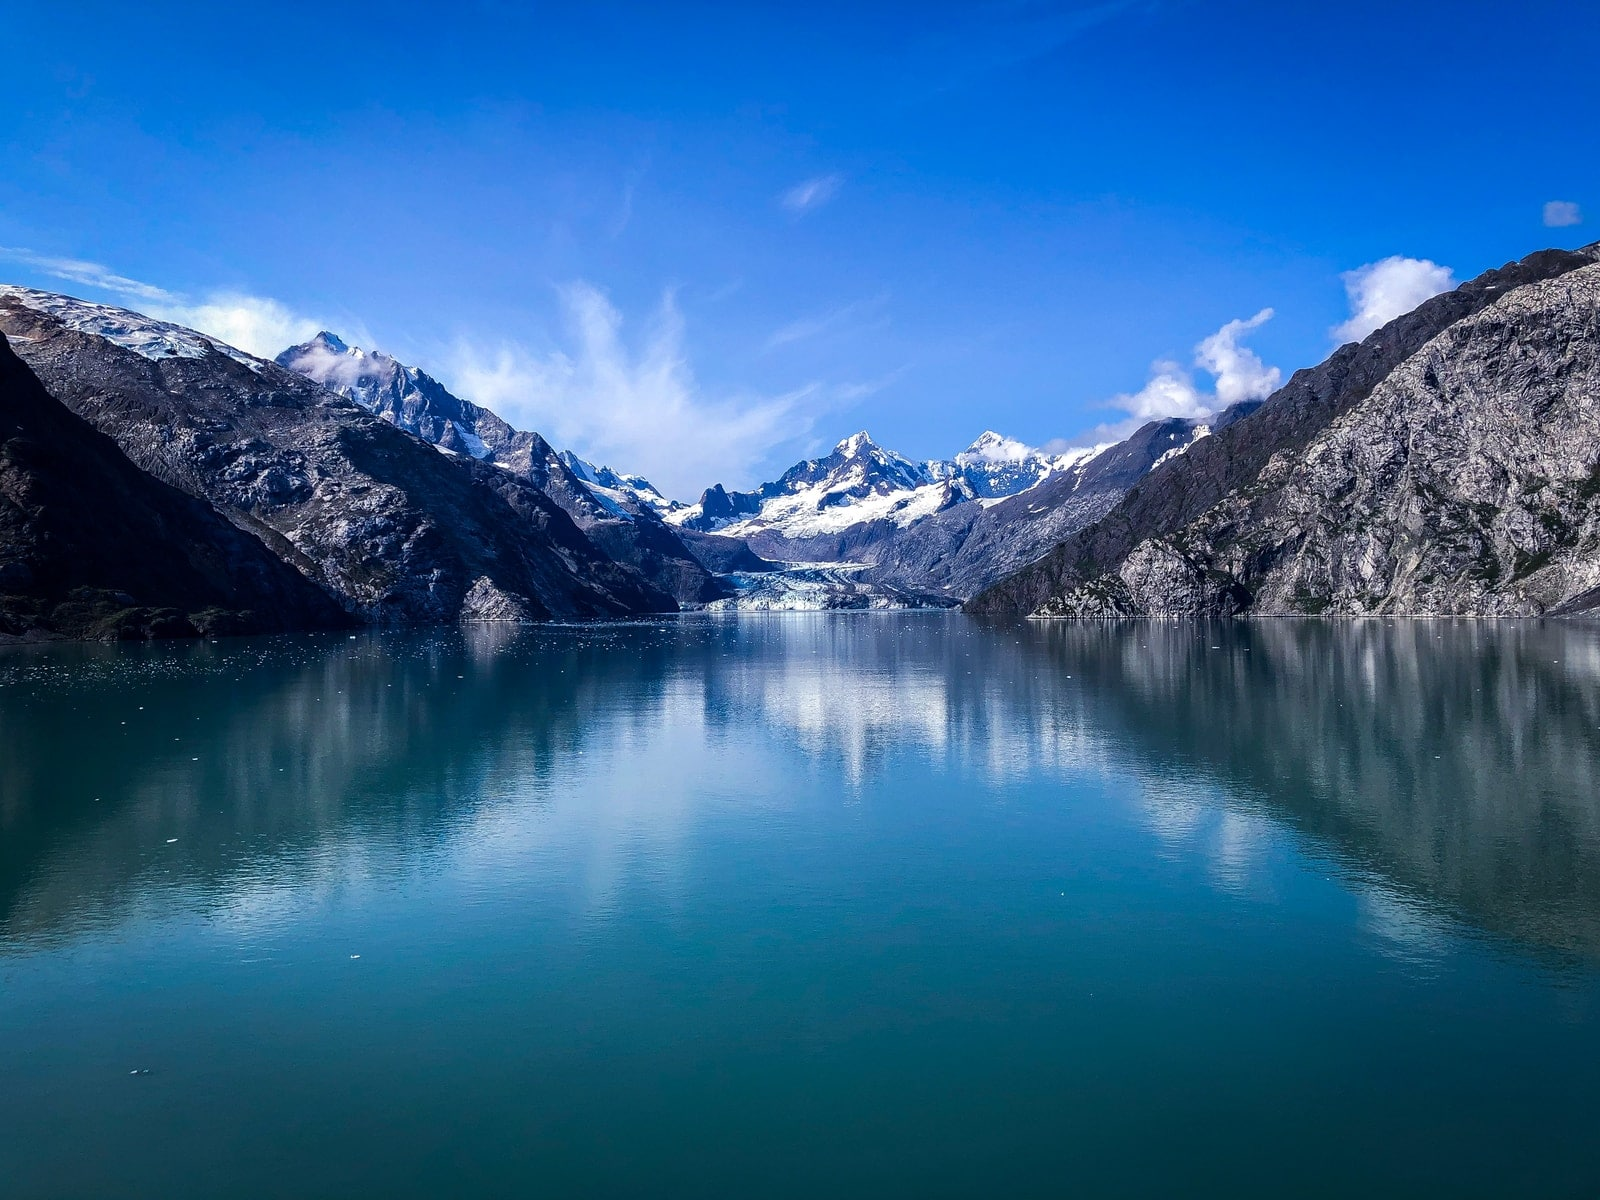 lake near snow covered mountain under blue sky during daytime